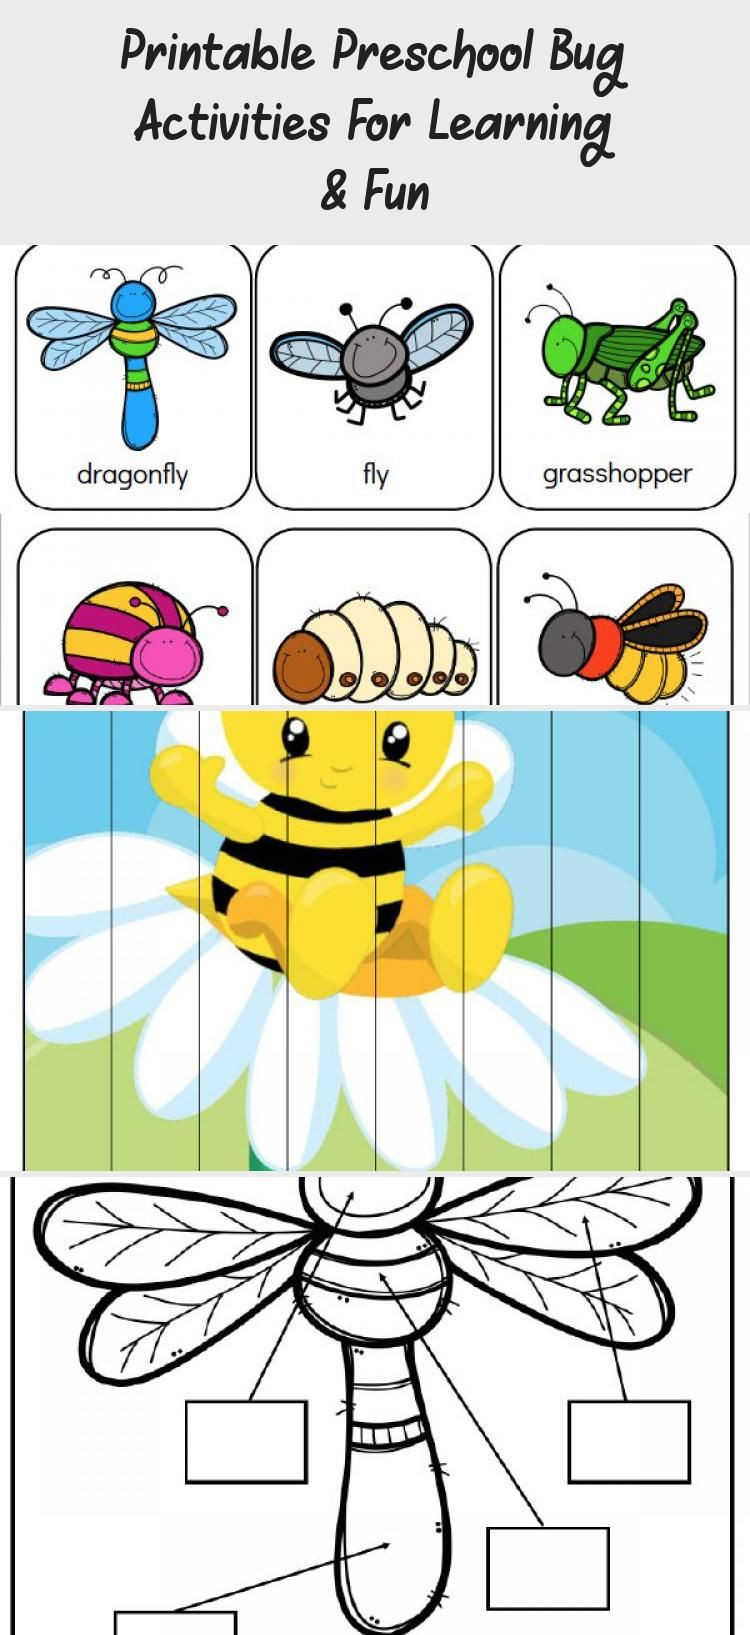 Bug Worksheets for Preschool Printable Preschool Bug Activities for Learning & Fun In